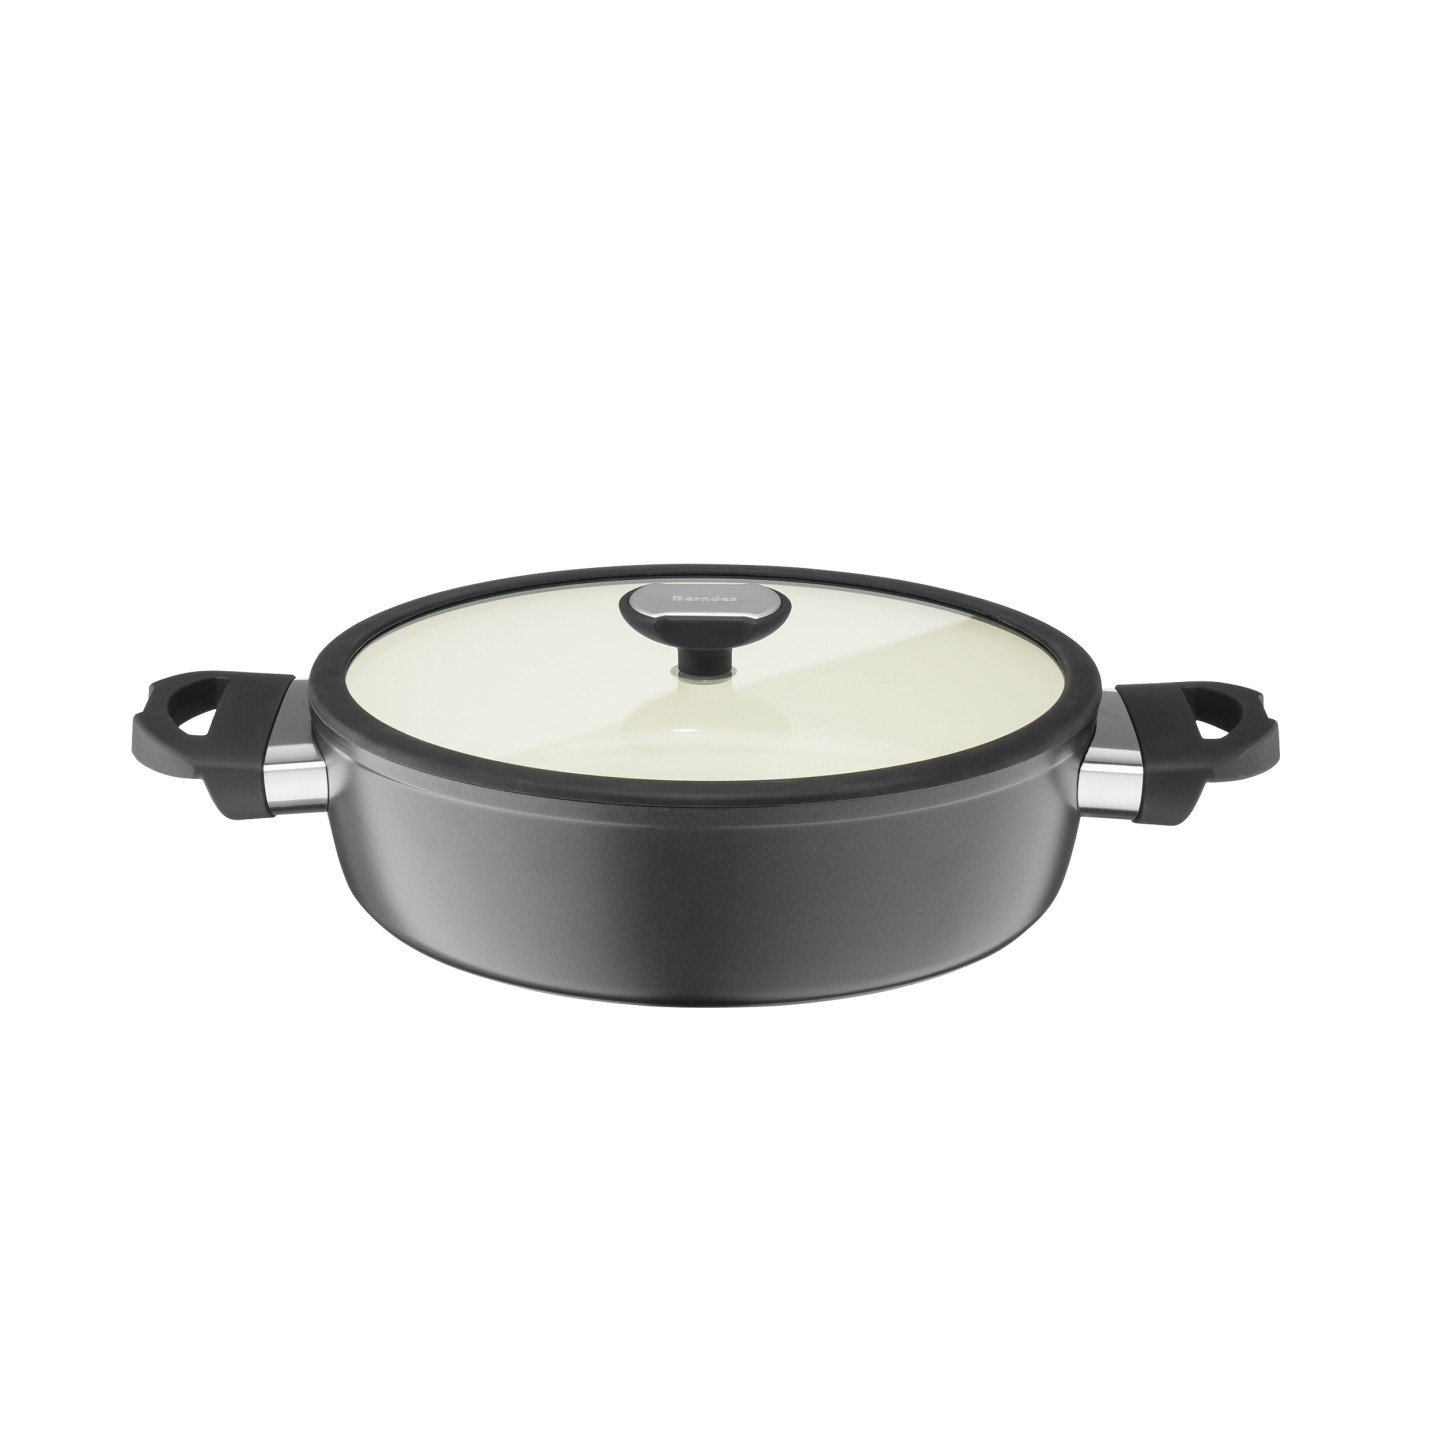 Berndes Smart 2 Handle Skillet 28cm + Lid